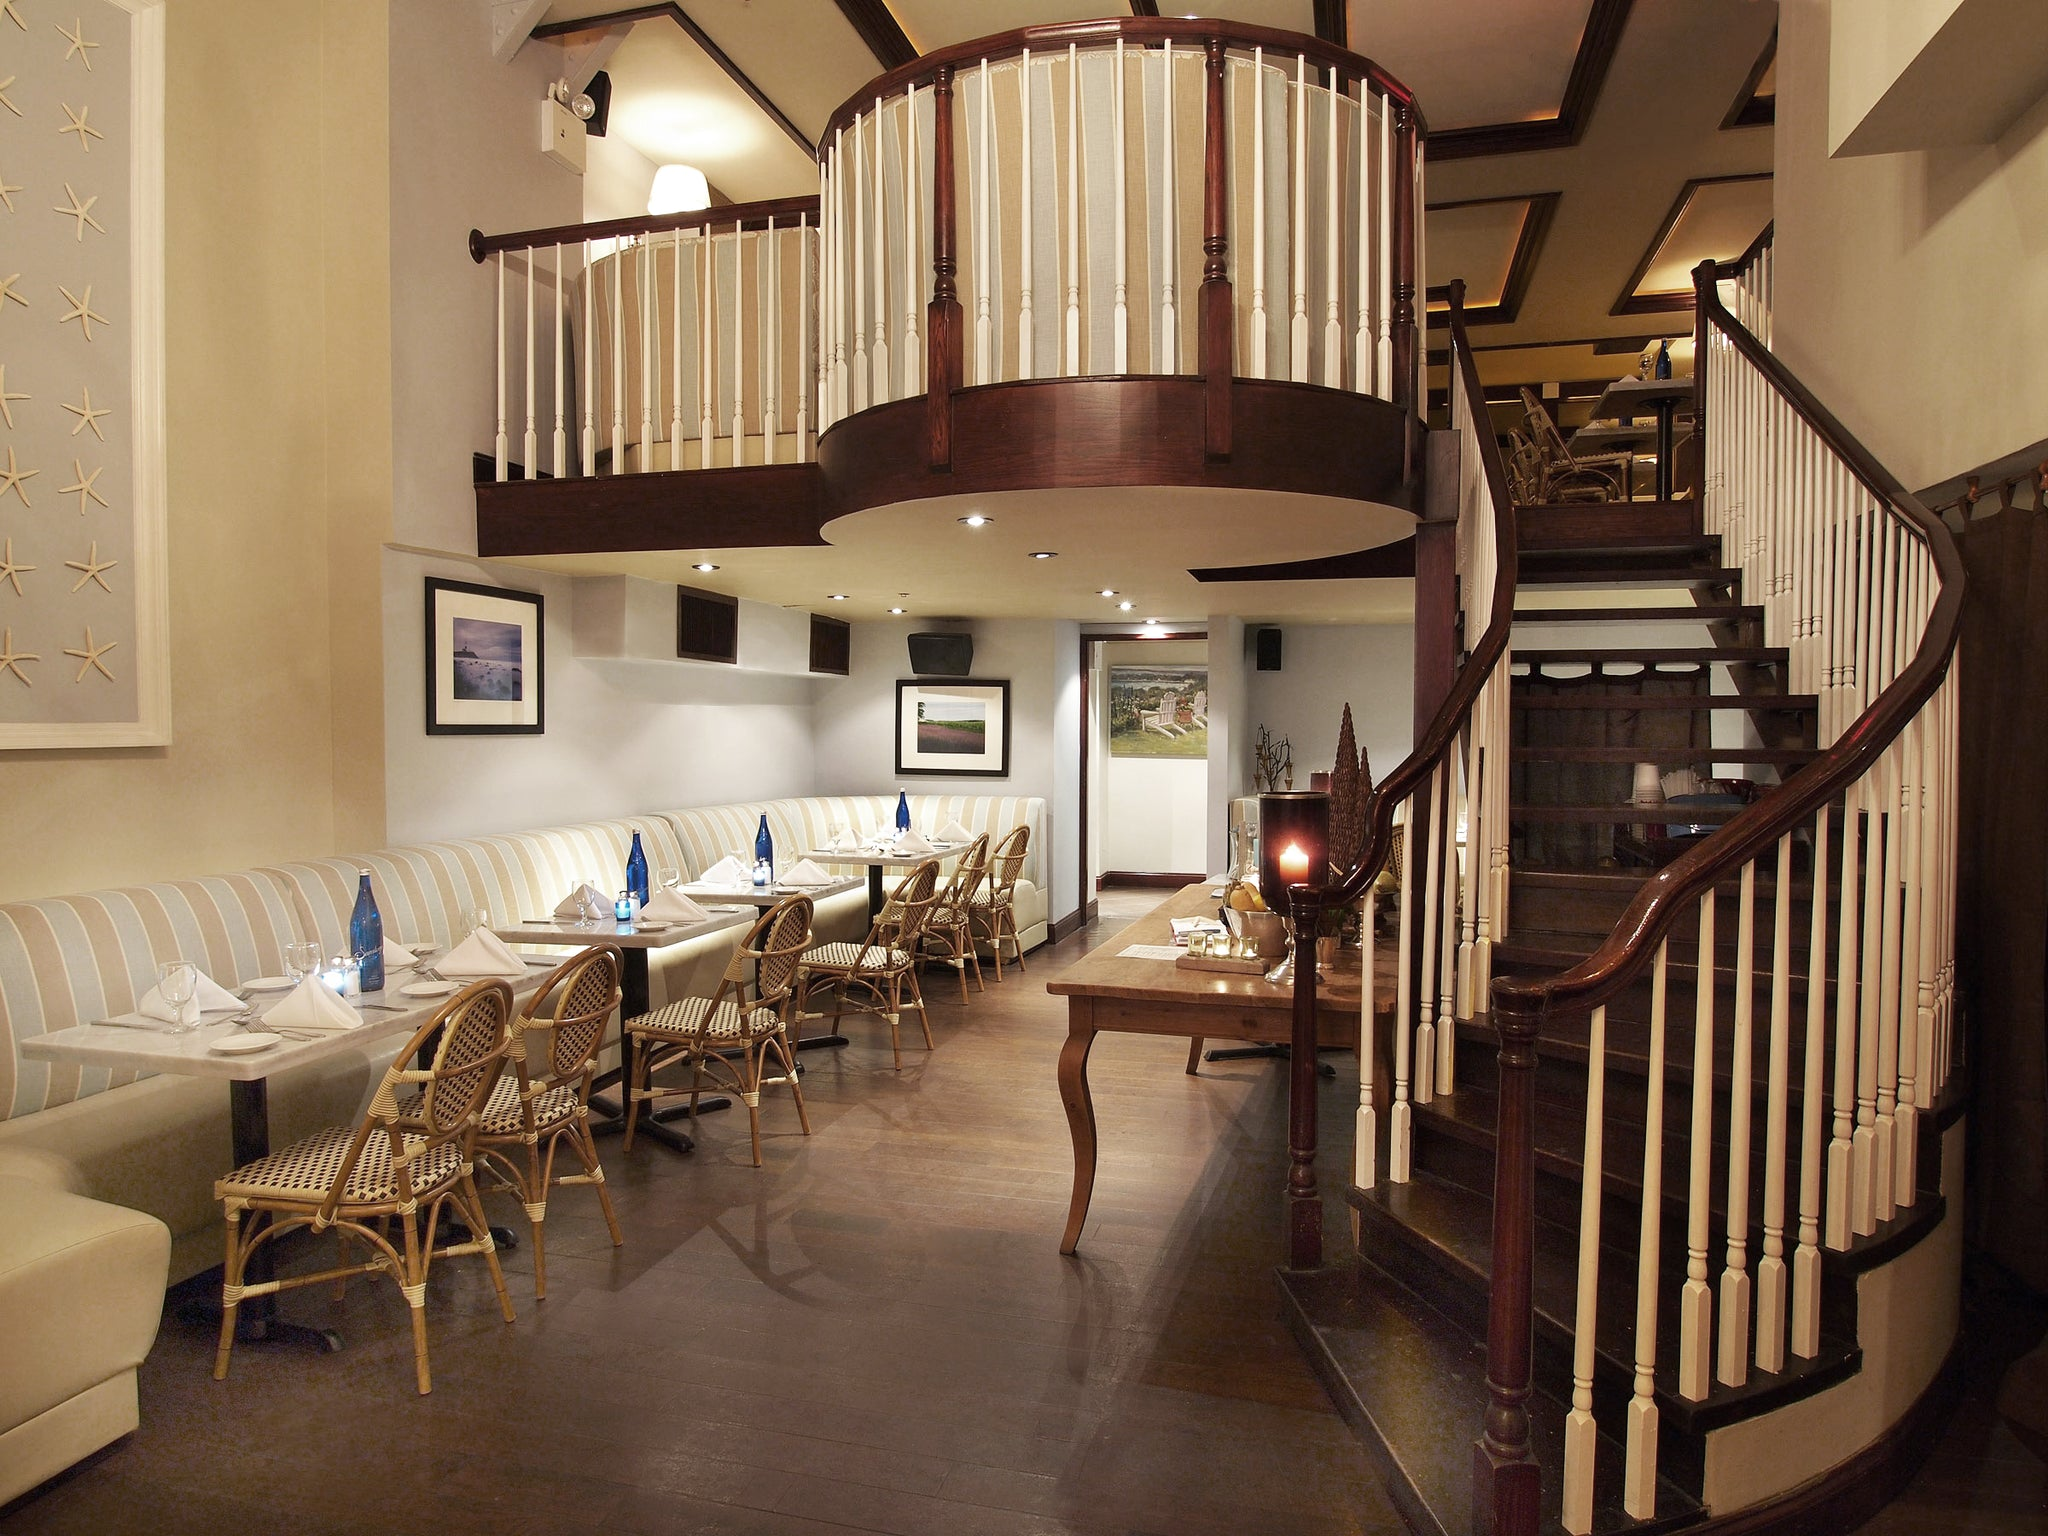 Ocean Blu Designs - Sagaponack Restaurant, NYC - New York Commercial Restaurant Interior Designers